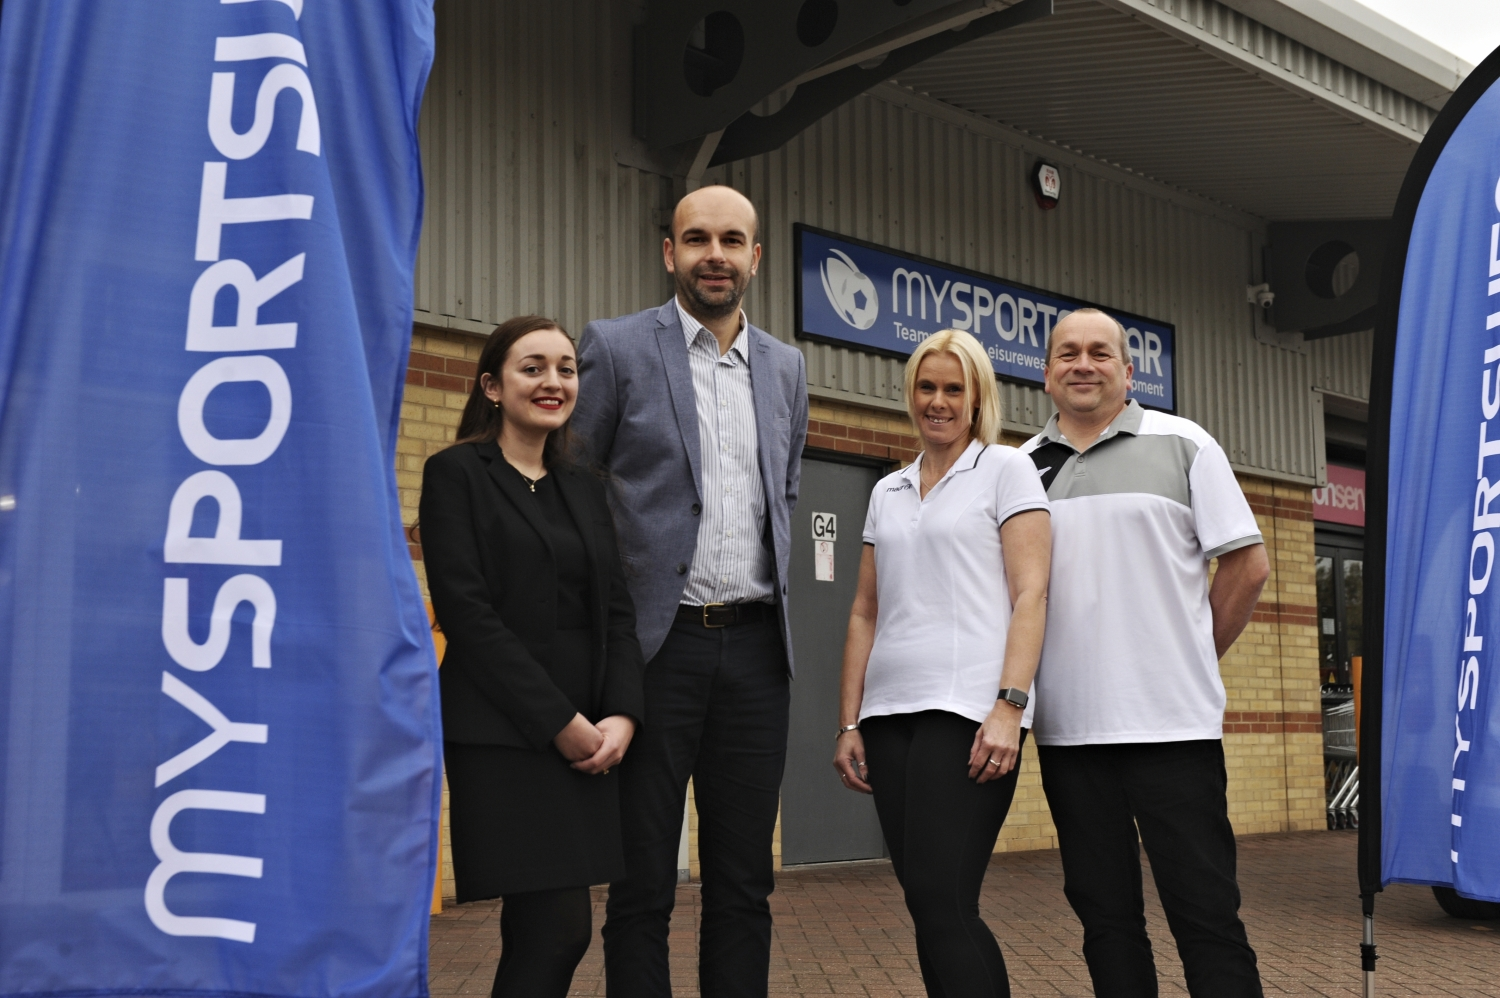 Jacksons advise local sportswear company on branching out to retail park premises